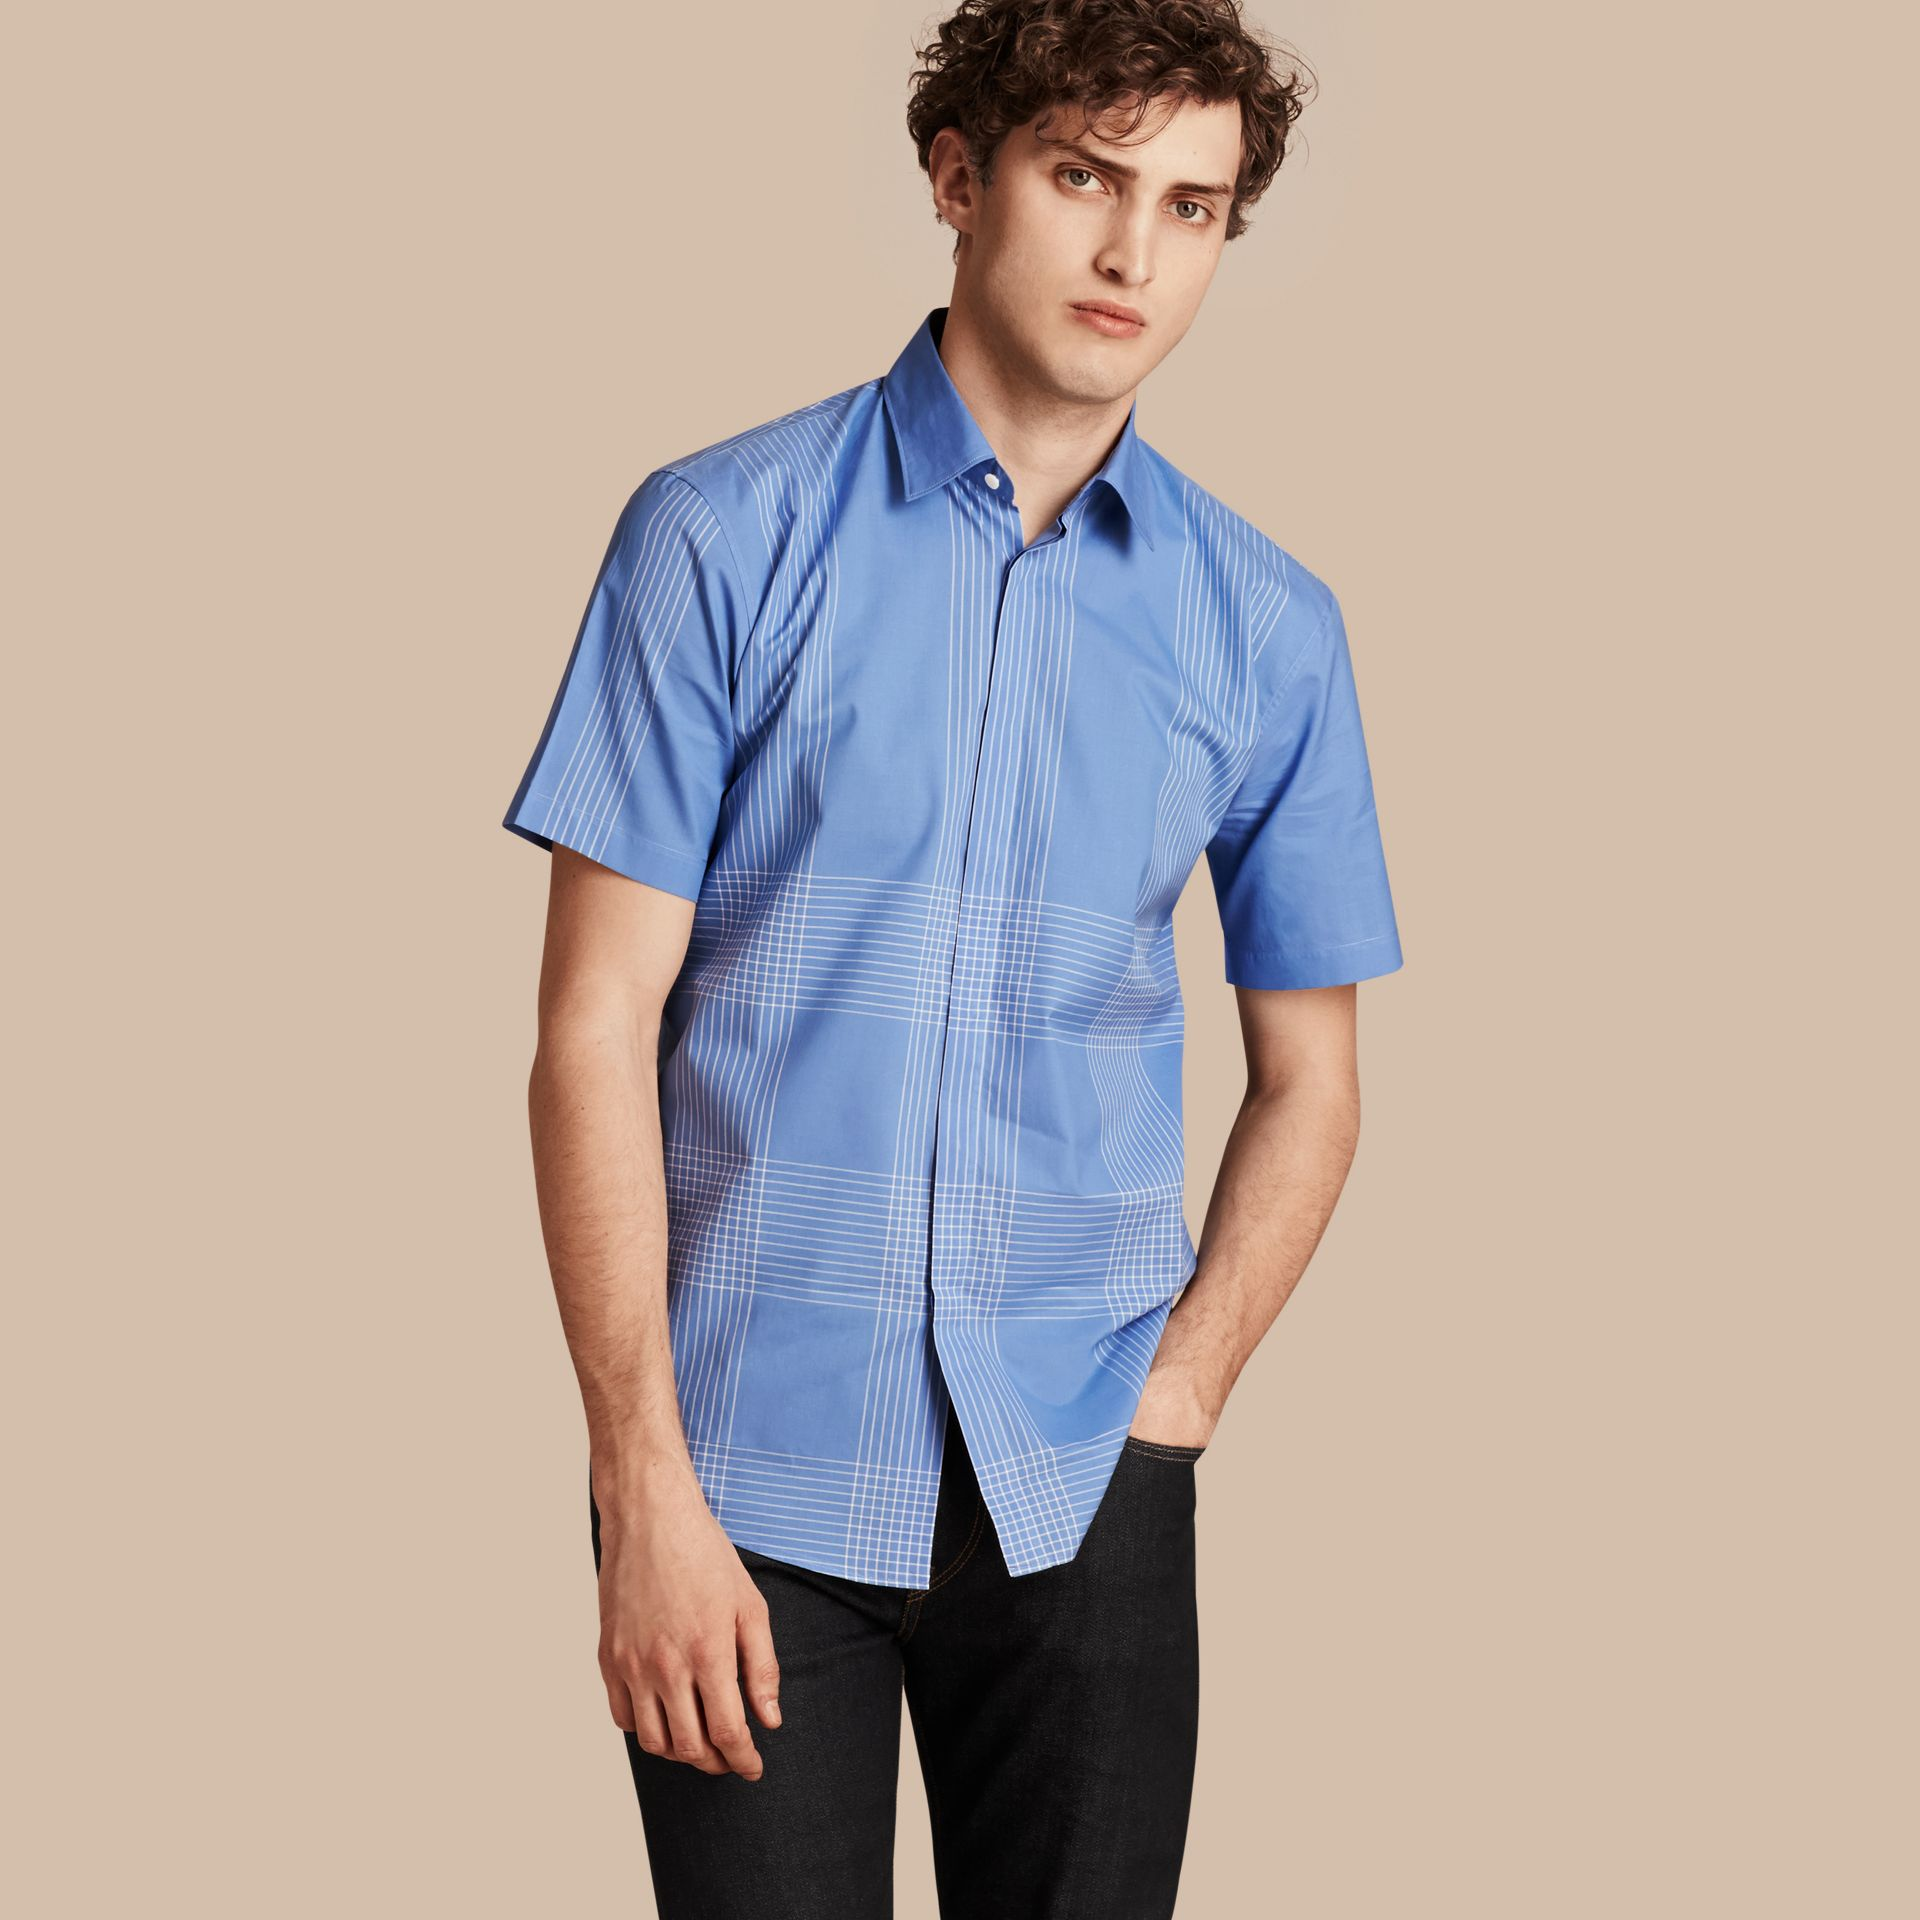 Bright hydrangea blue Short-sleeved Check Cotton Shirt Bright Hydrangea Blue - gallery image 1